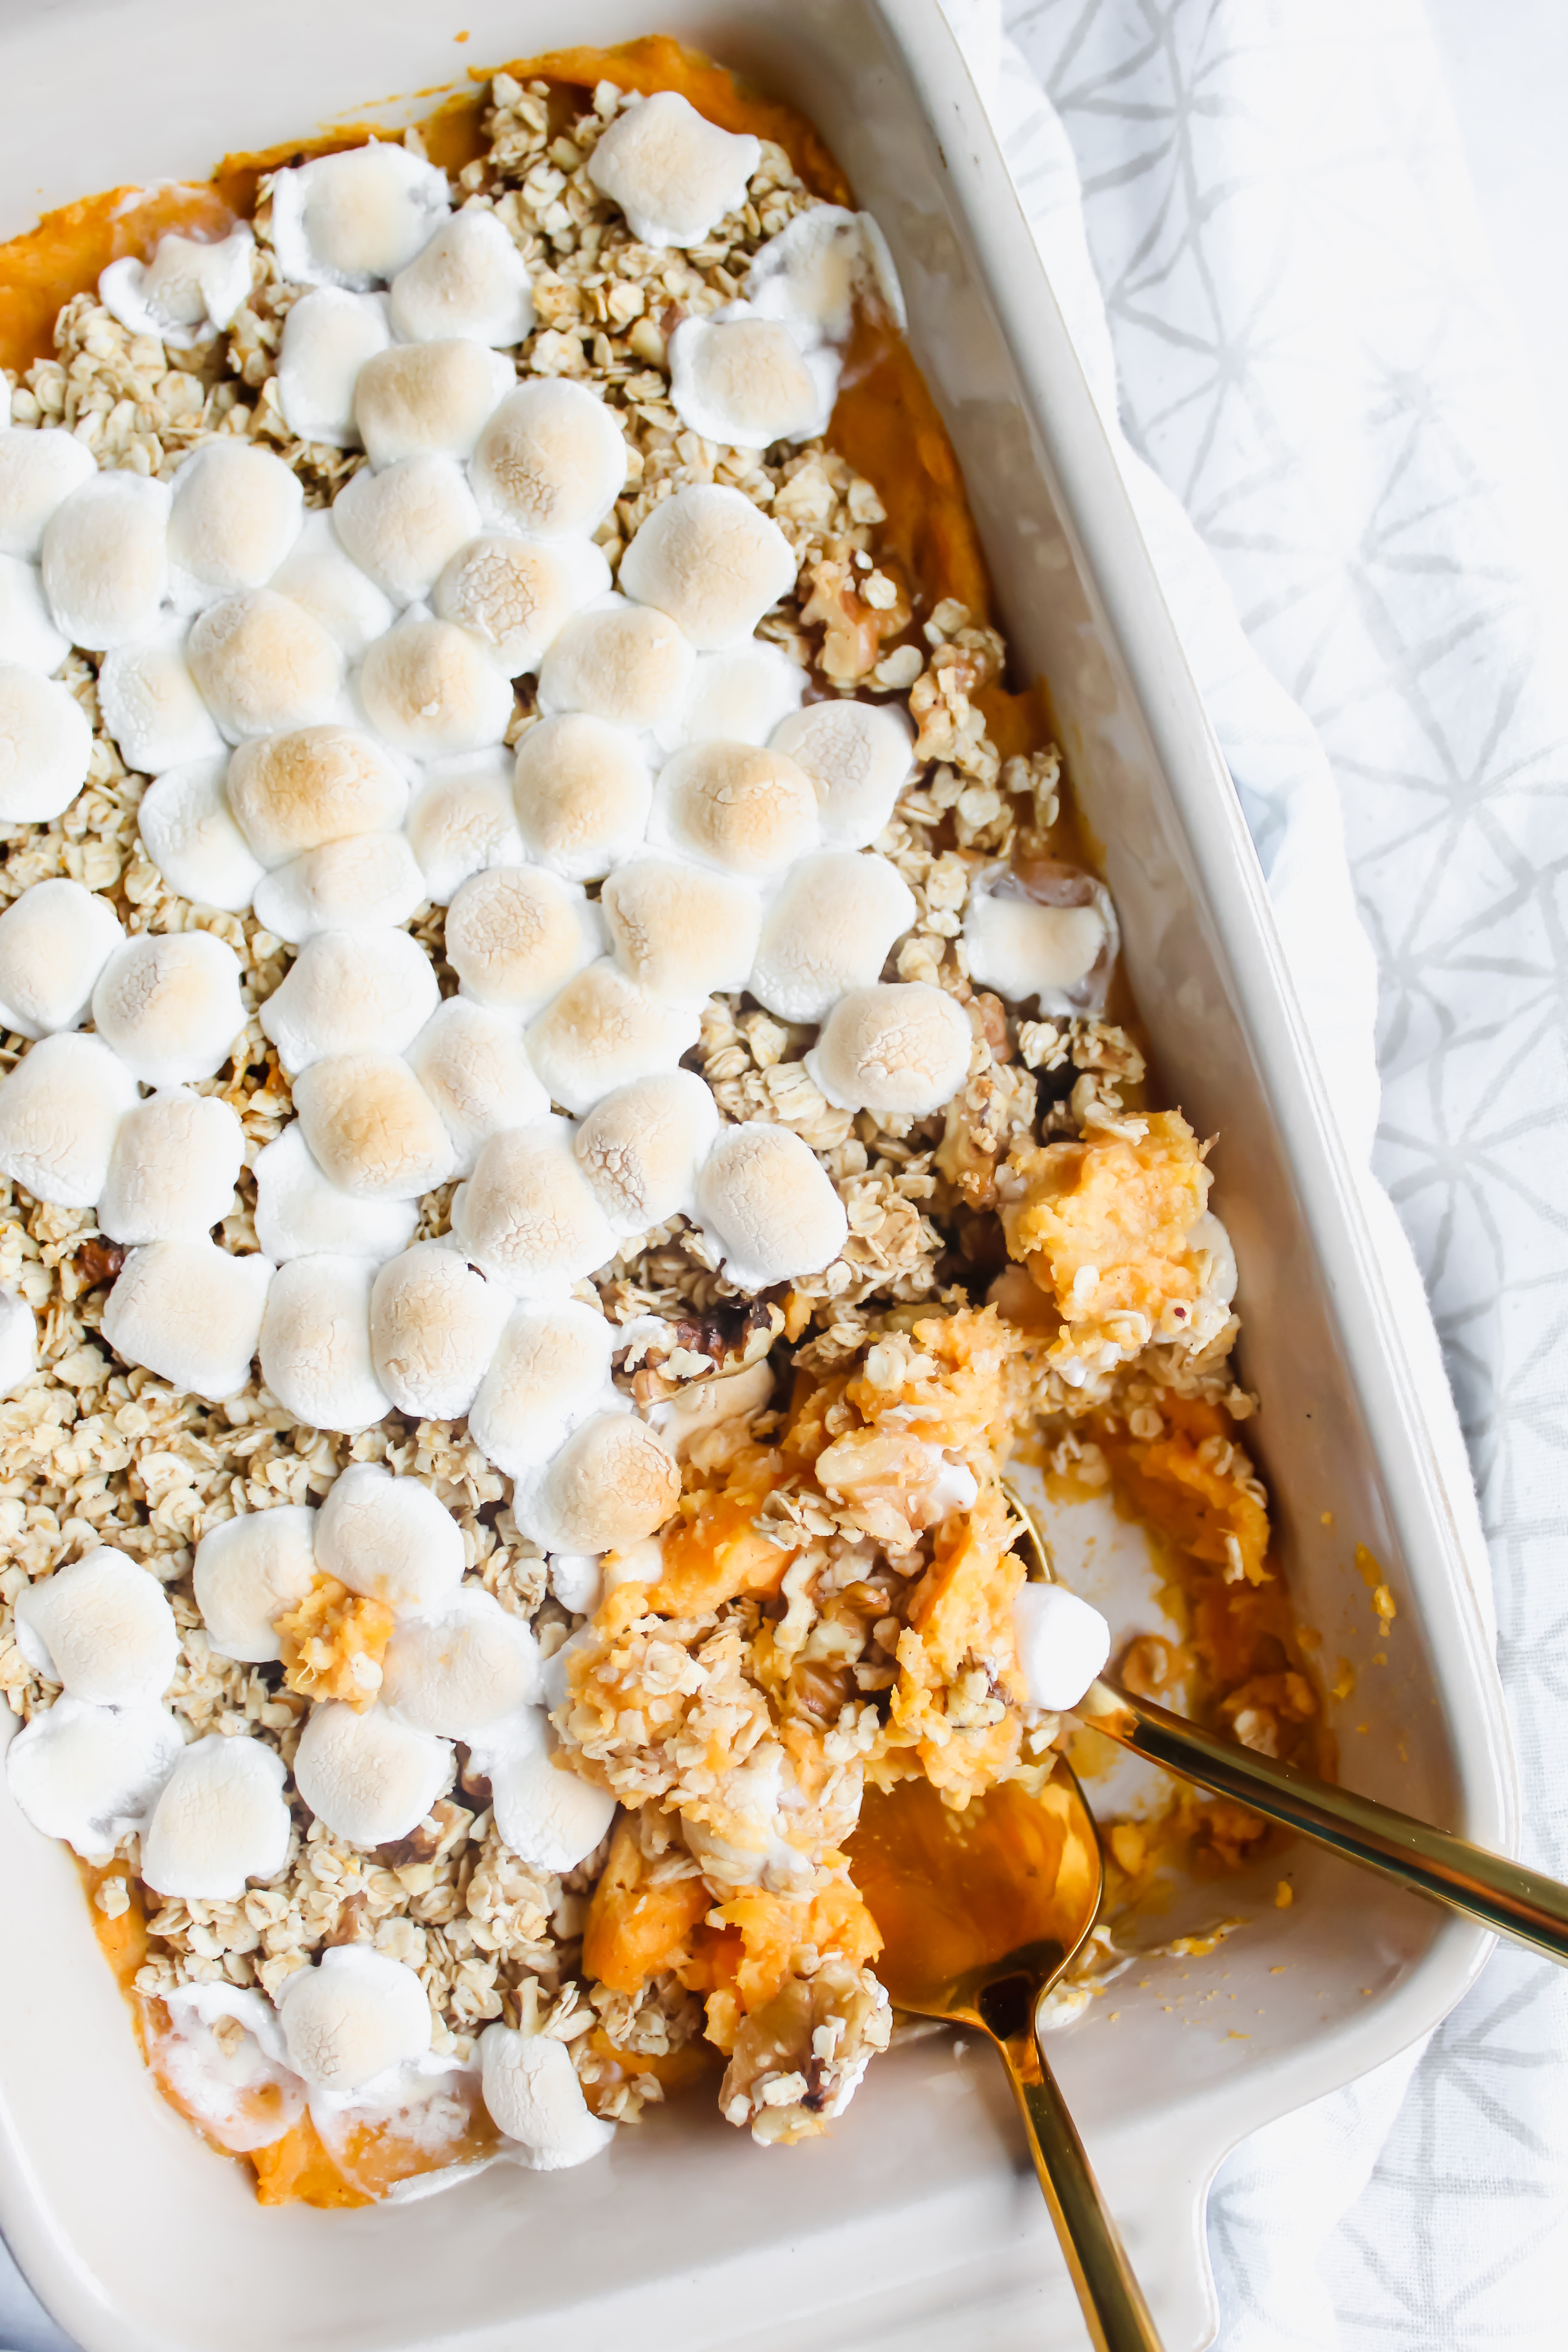 Healthy Sweet Potato Casserole with Maple Walnut Oat Topping in casserole dish with 2 golden spoons